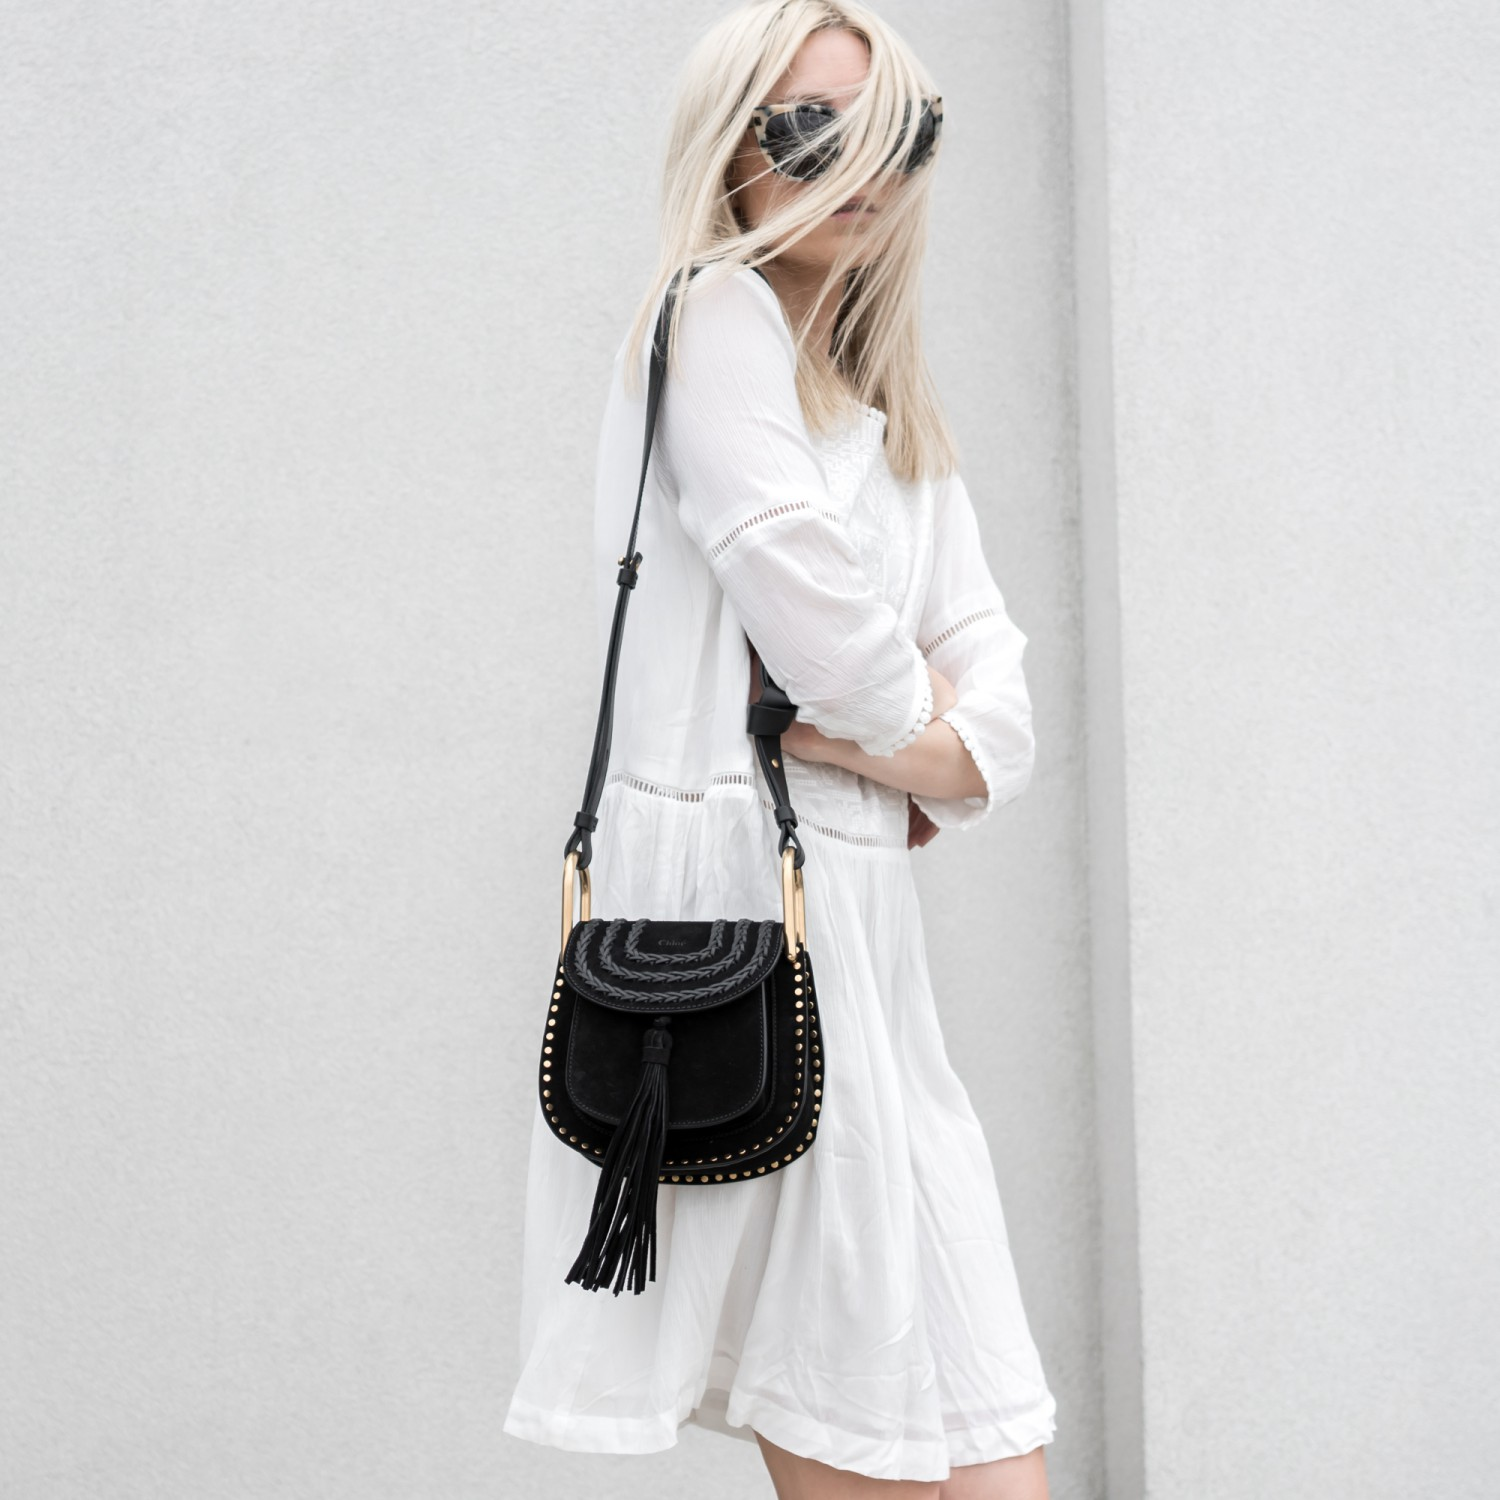 figtny.com | Chloe Hudson Mini Bag & Suncoo Dress